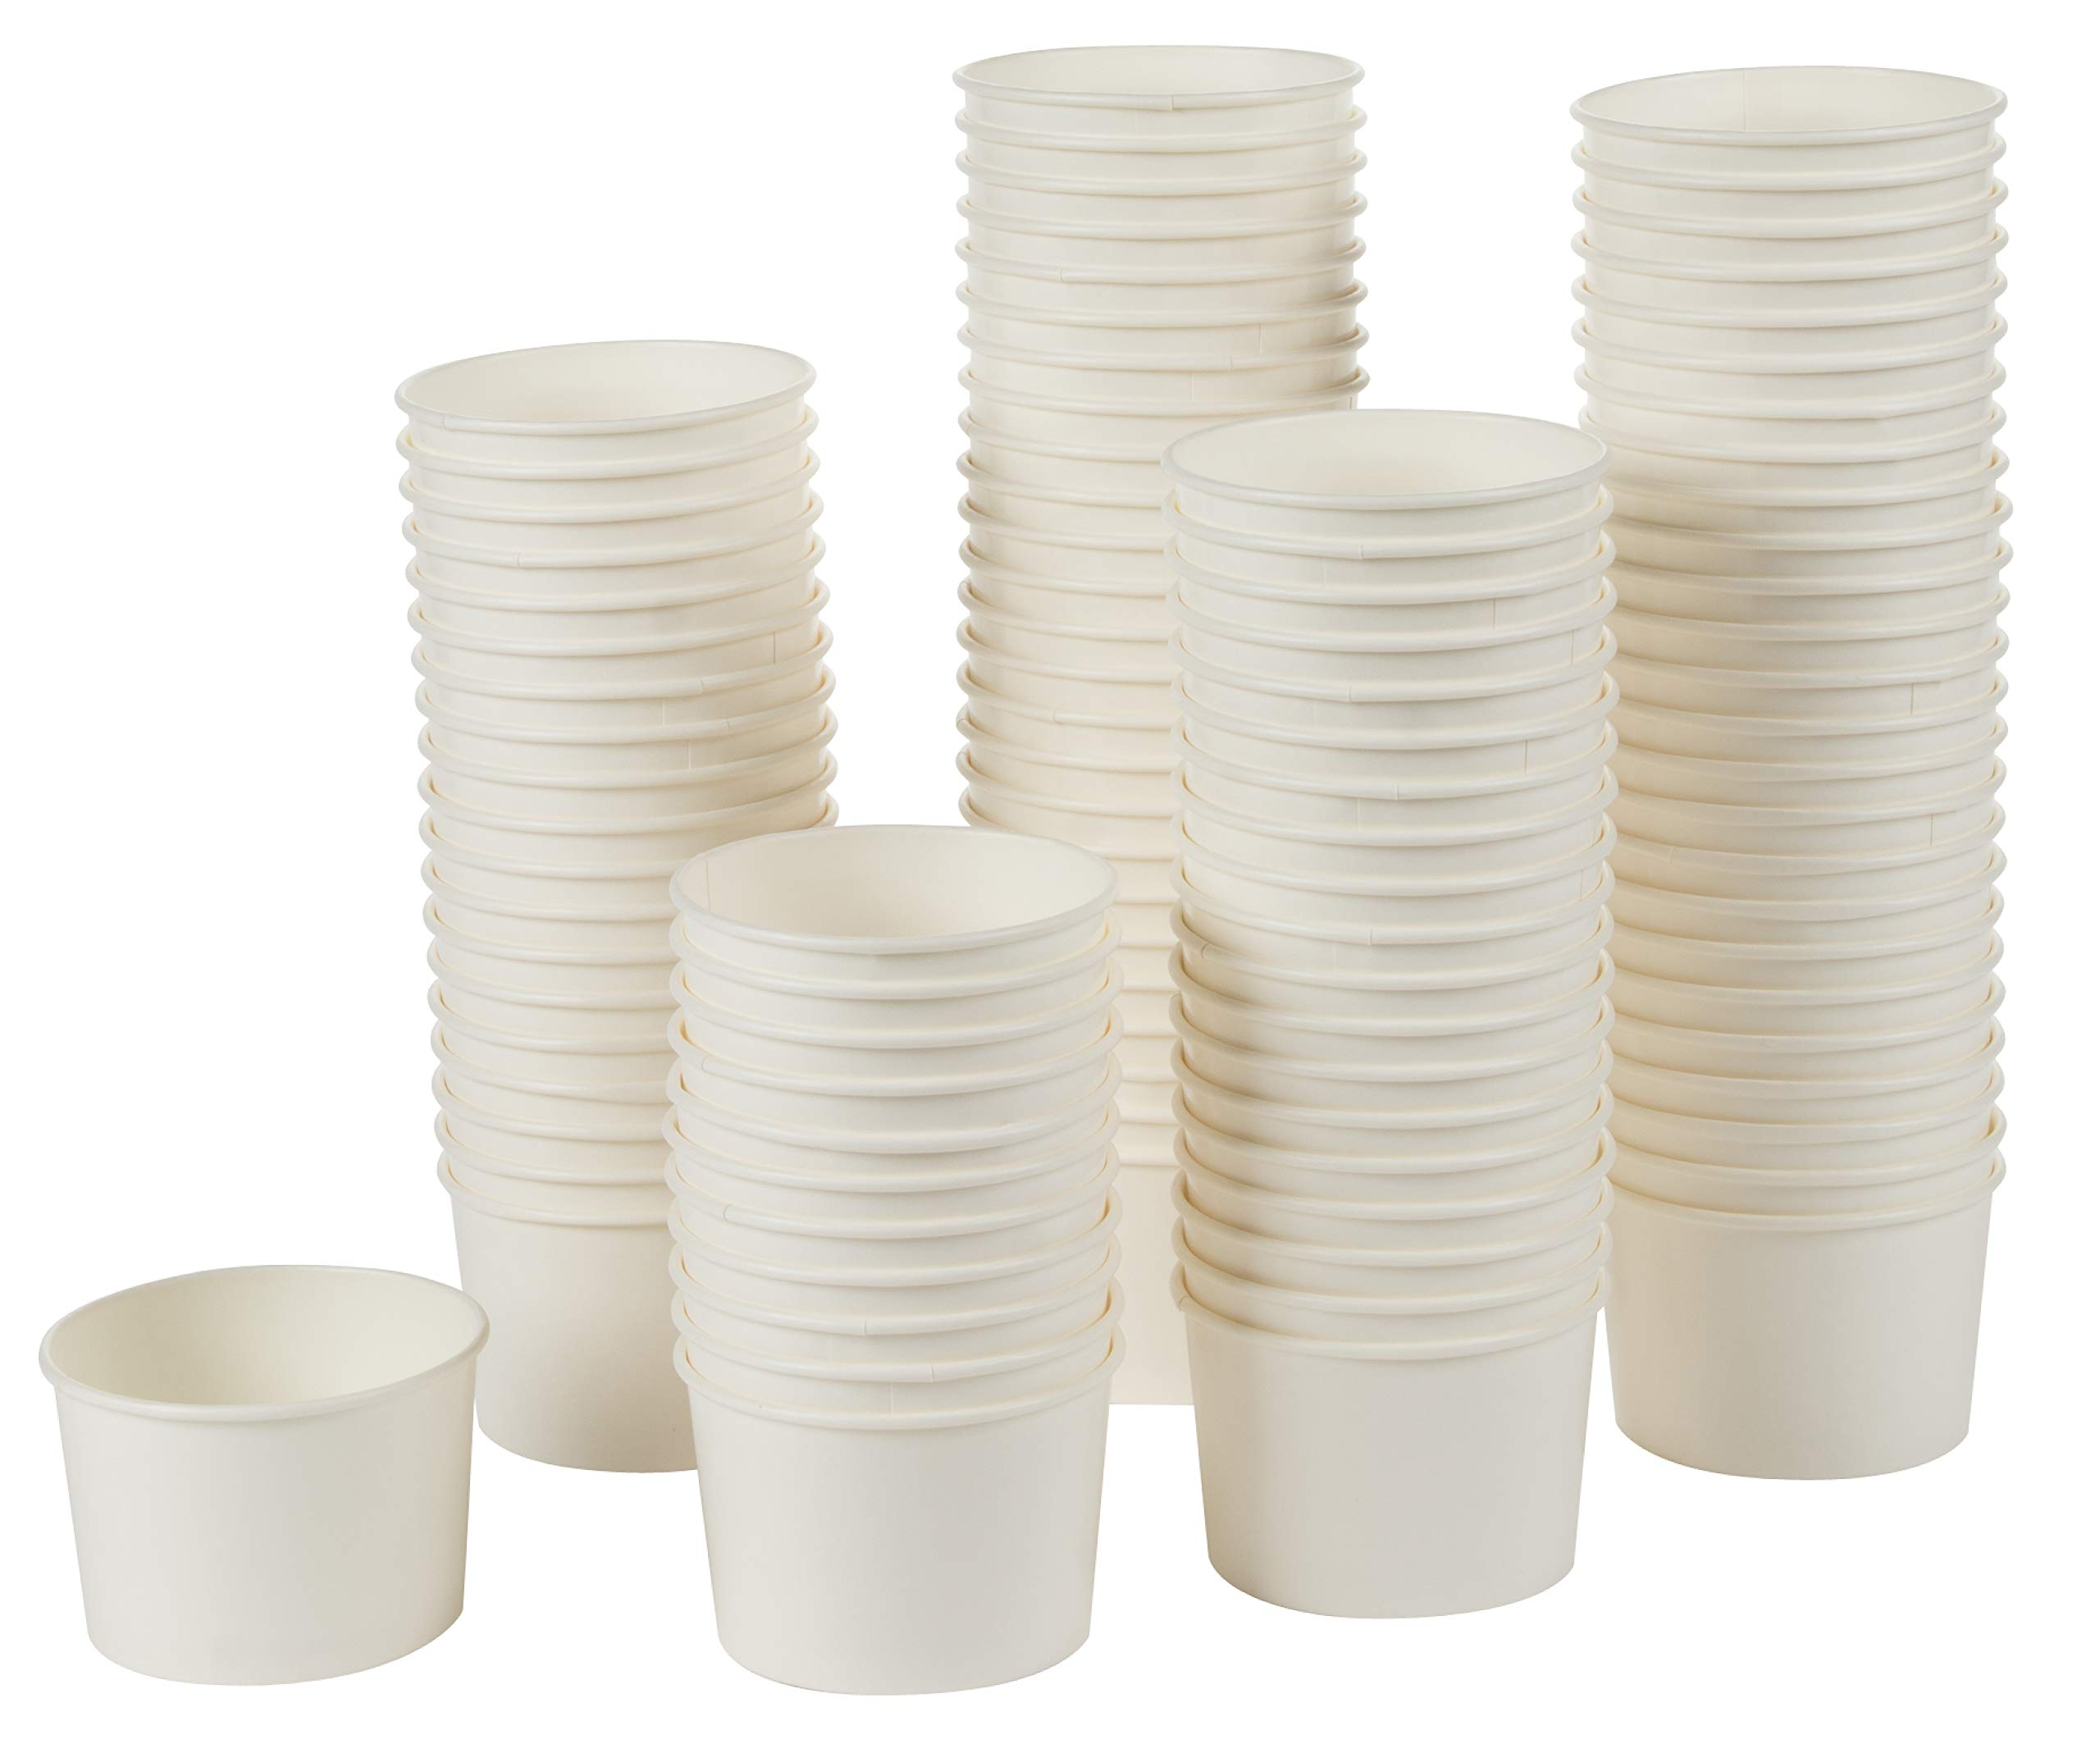 Paper Ice Cream Cups - 100-Count Disposable Dessert Bowls for Hot or Cold Food, 6-Ounce Party Supplies Treat Cups for Sundae, Frozen Yogurt, Soup, White